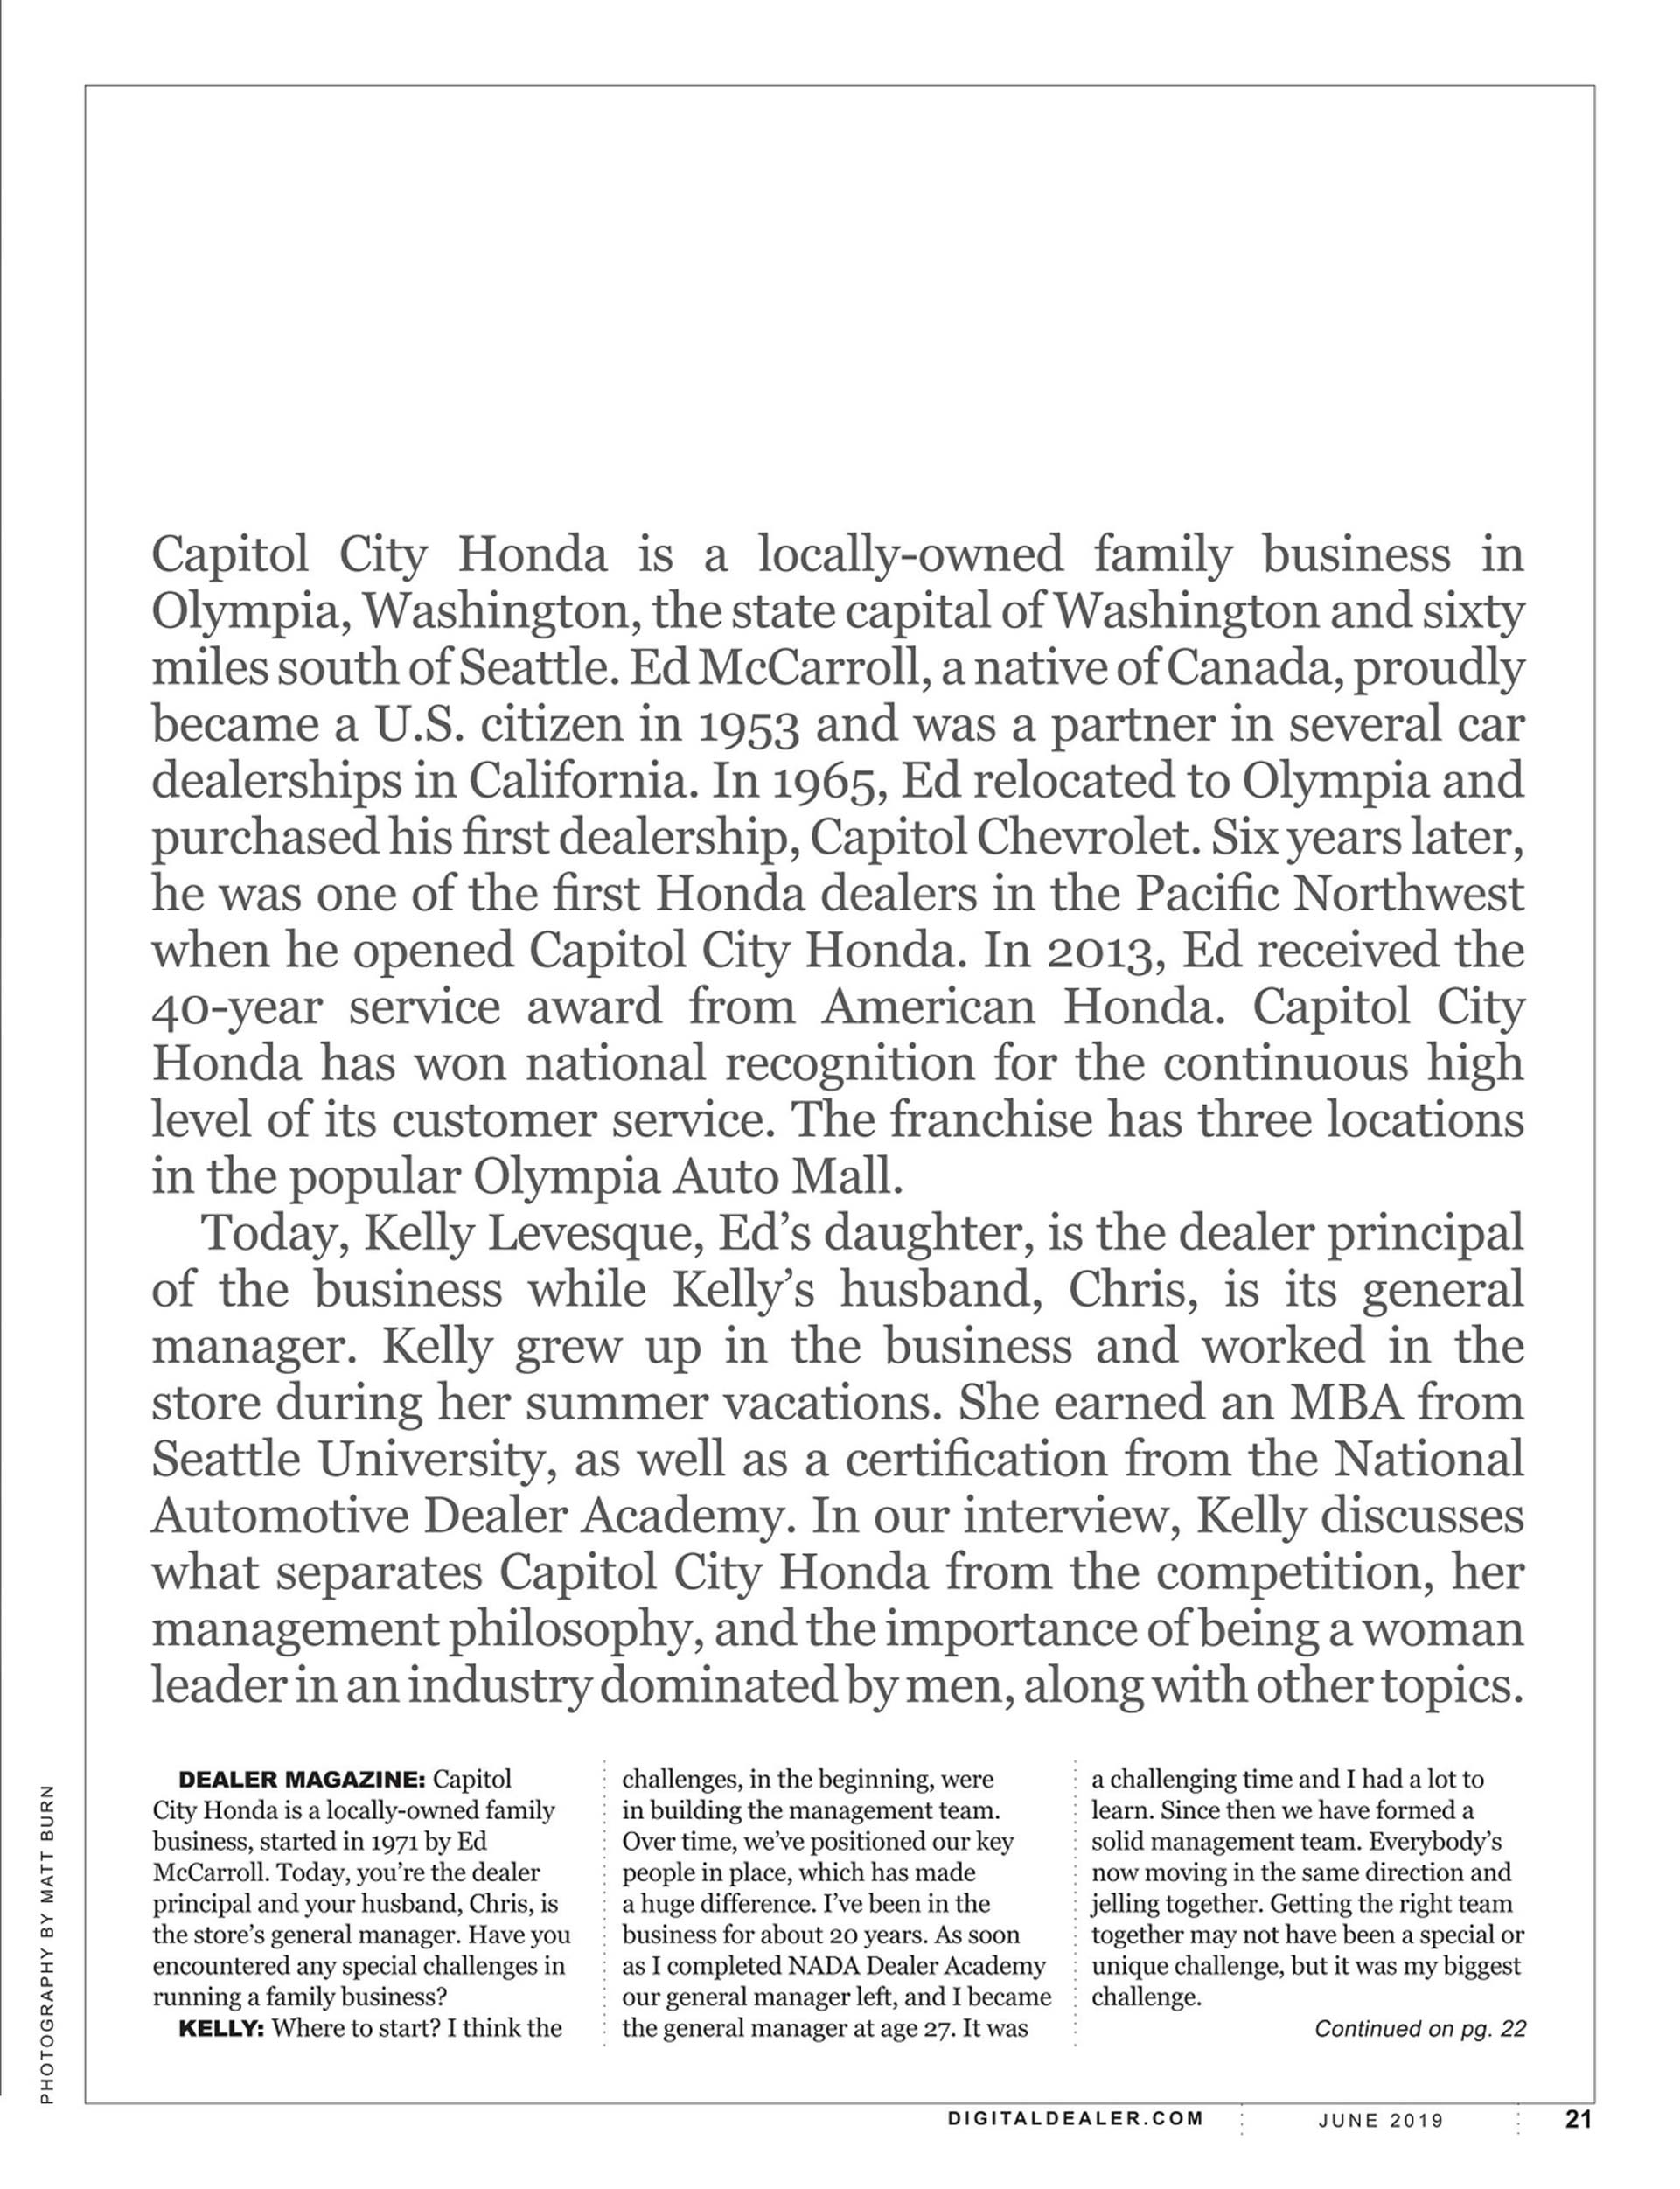 Capitol City Honda in Dealer Magazine 3